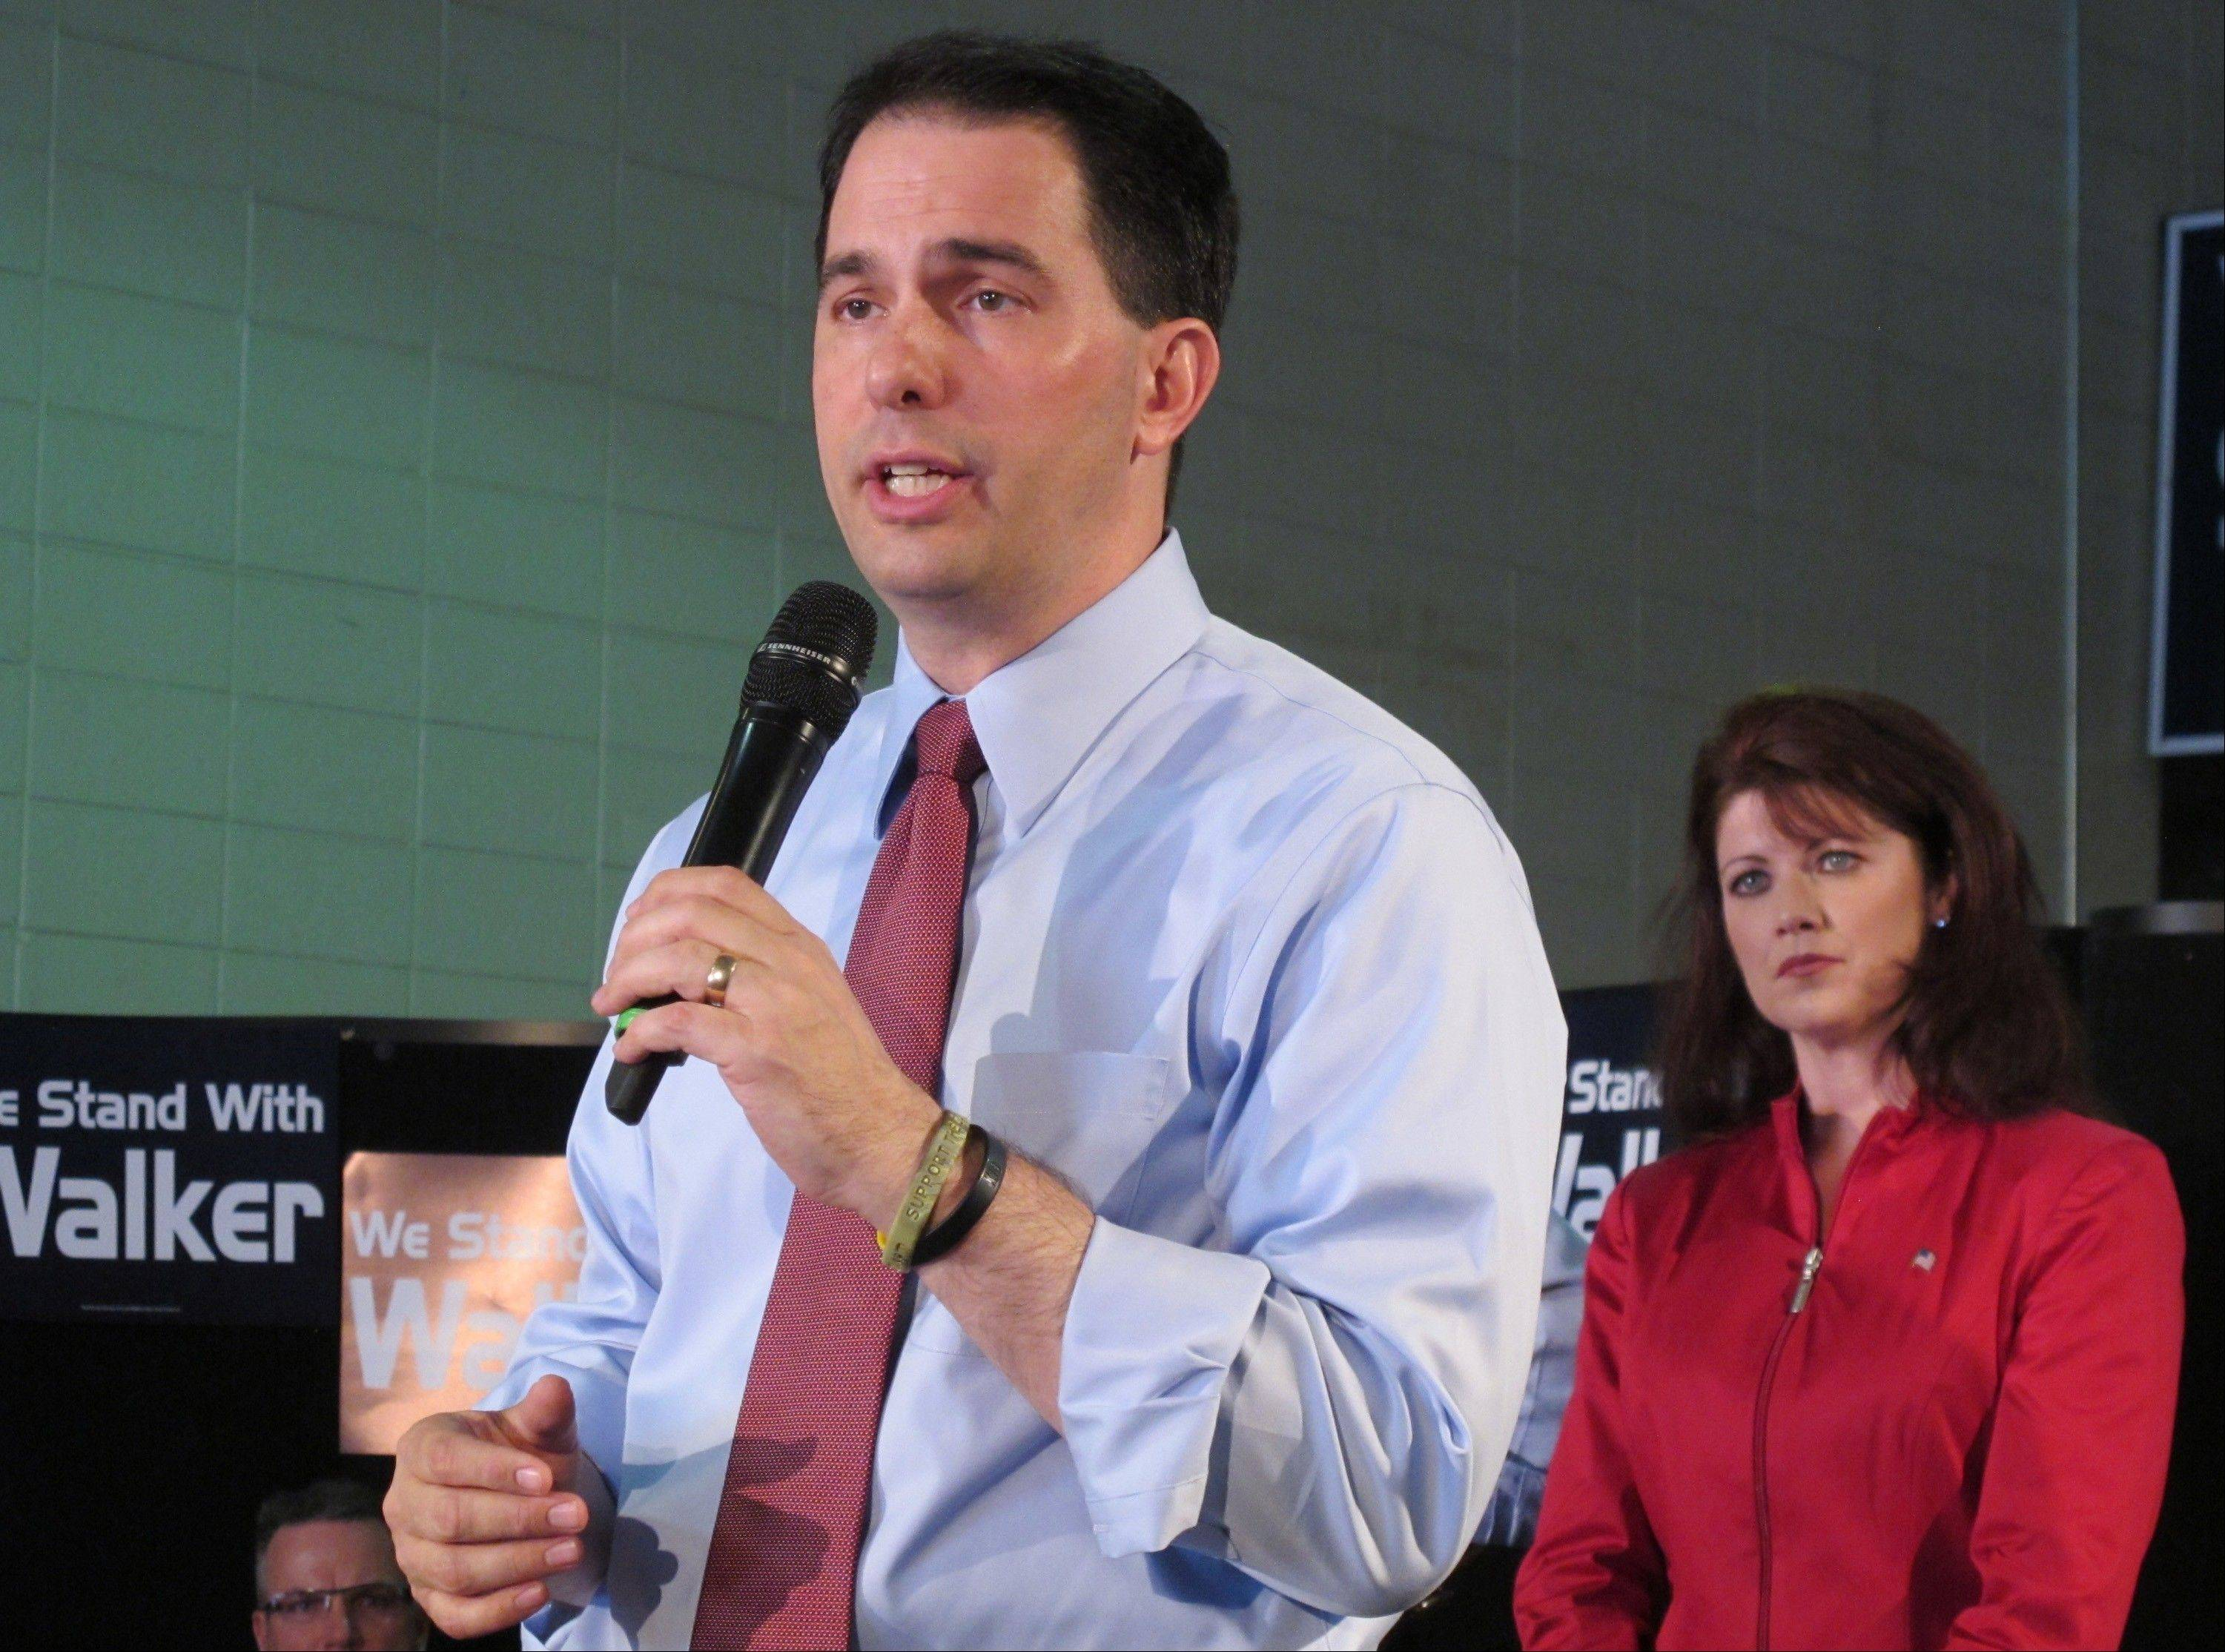 Wisconsin Gov. Scott Walker addresses supporters last month in Waukesha as Lt. Gov. Rebecca Kleefisch listens. Both face recall elections Tuesday on separate ballots.